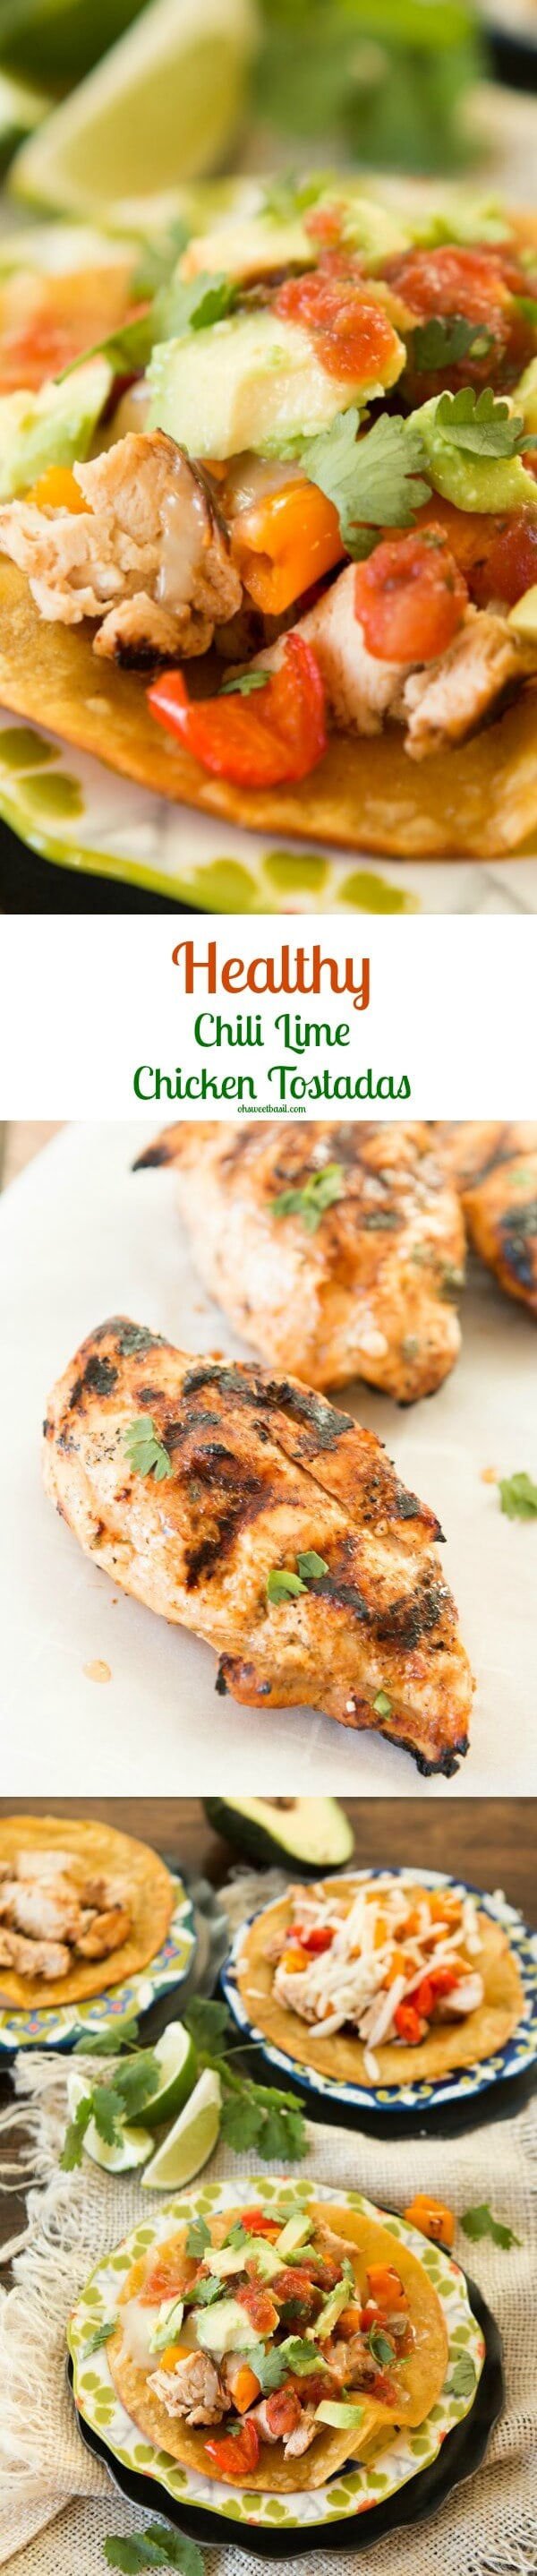 healthier chili lime grilled chicken tostadas ohsweetbasil.com